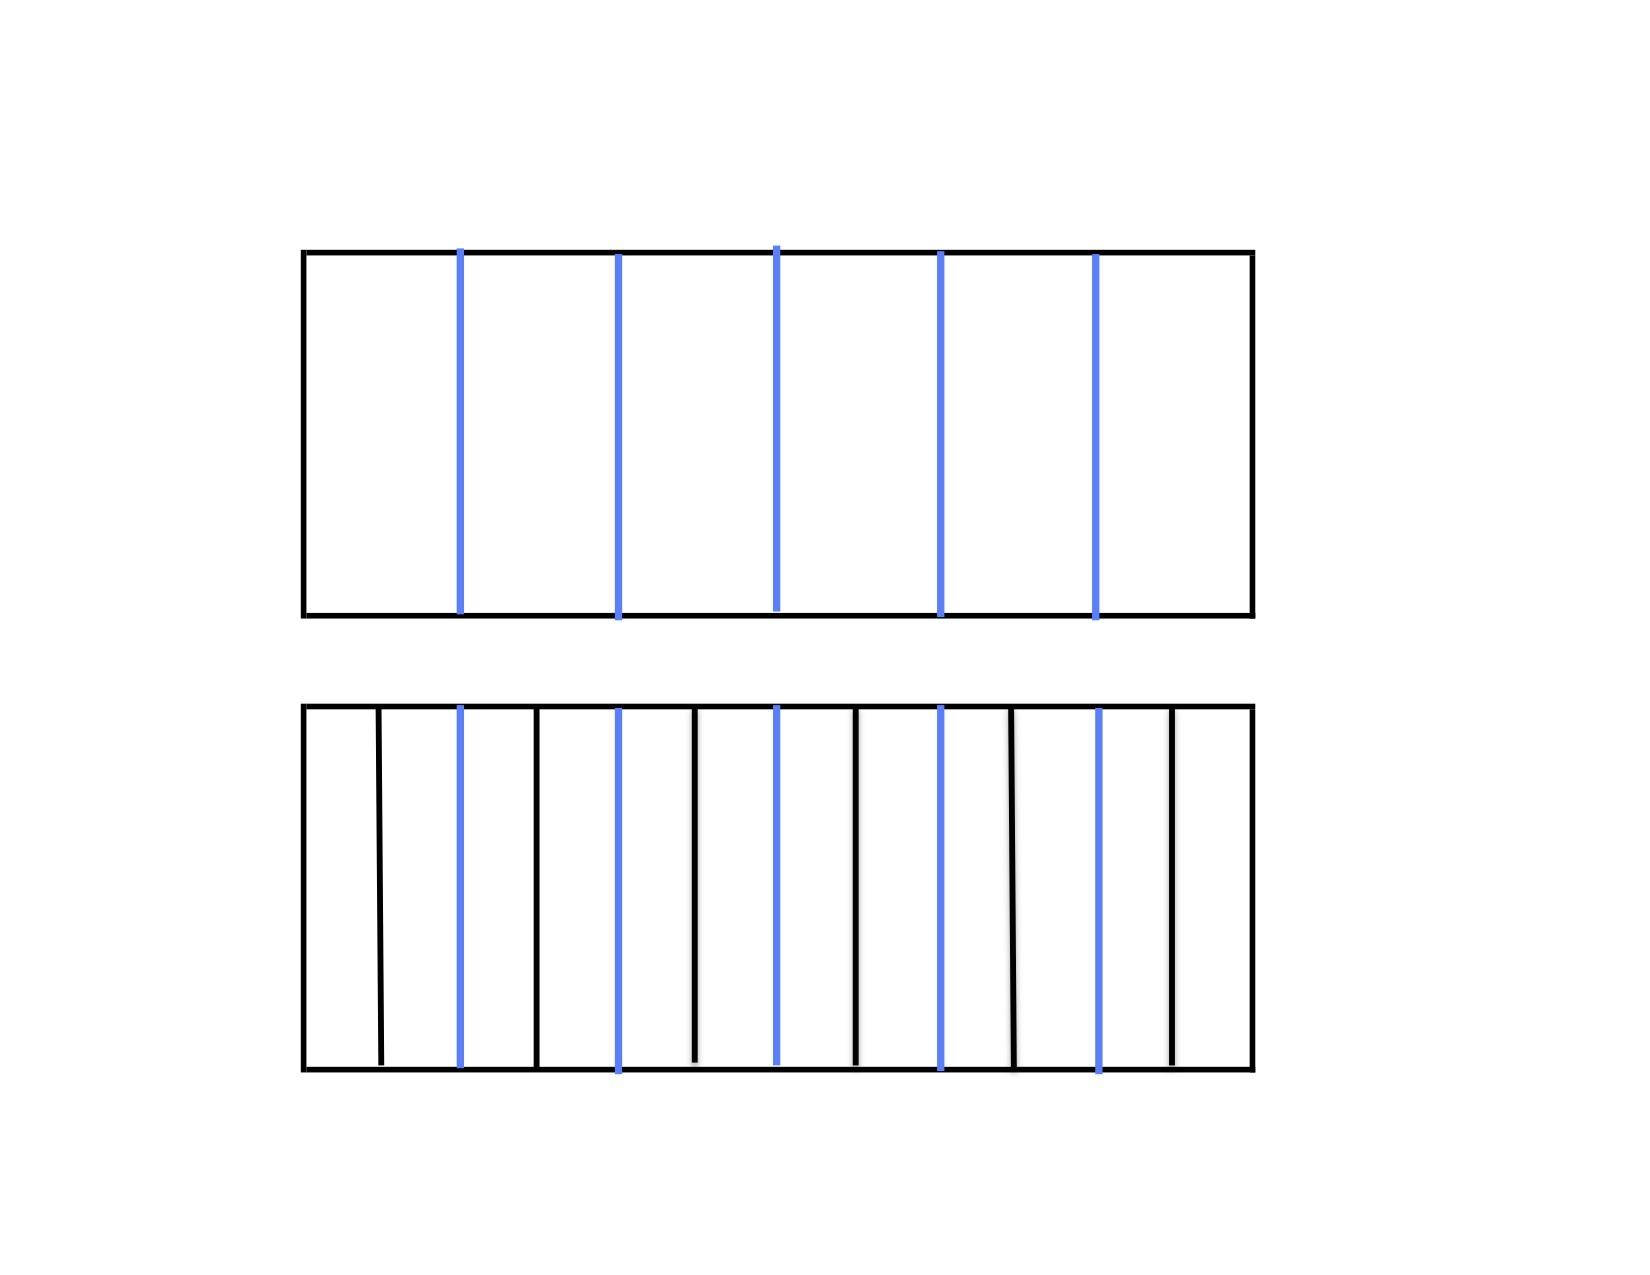 Are The Fractions Equivalent Students Partition Squares To